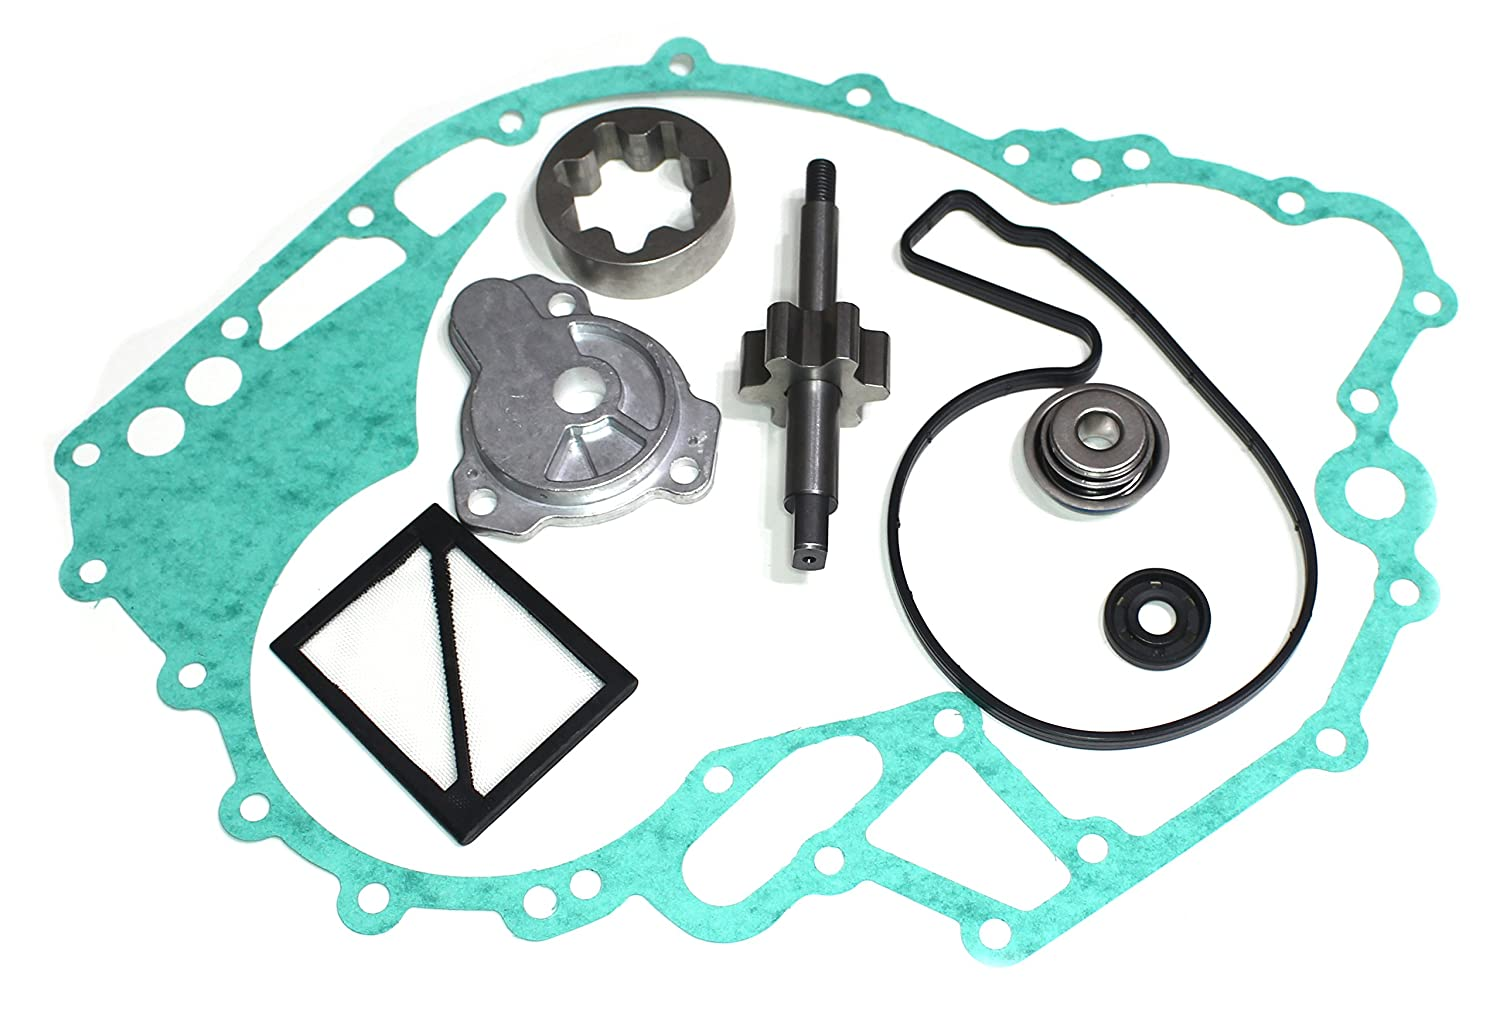 Amazon com: Primary Rear Oil Pump Rebuild Kit Compatible